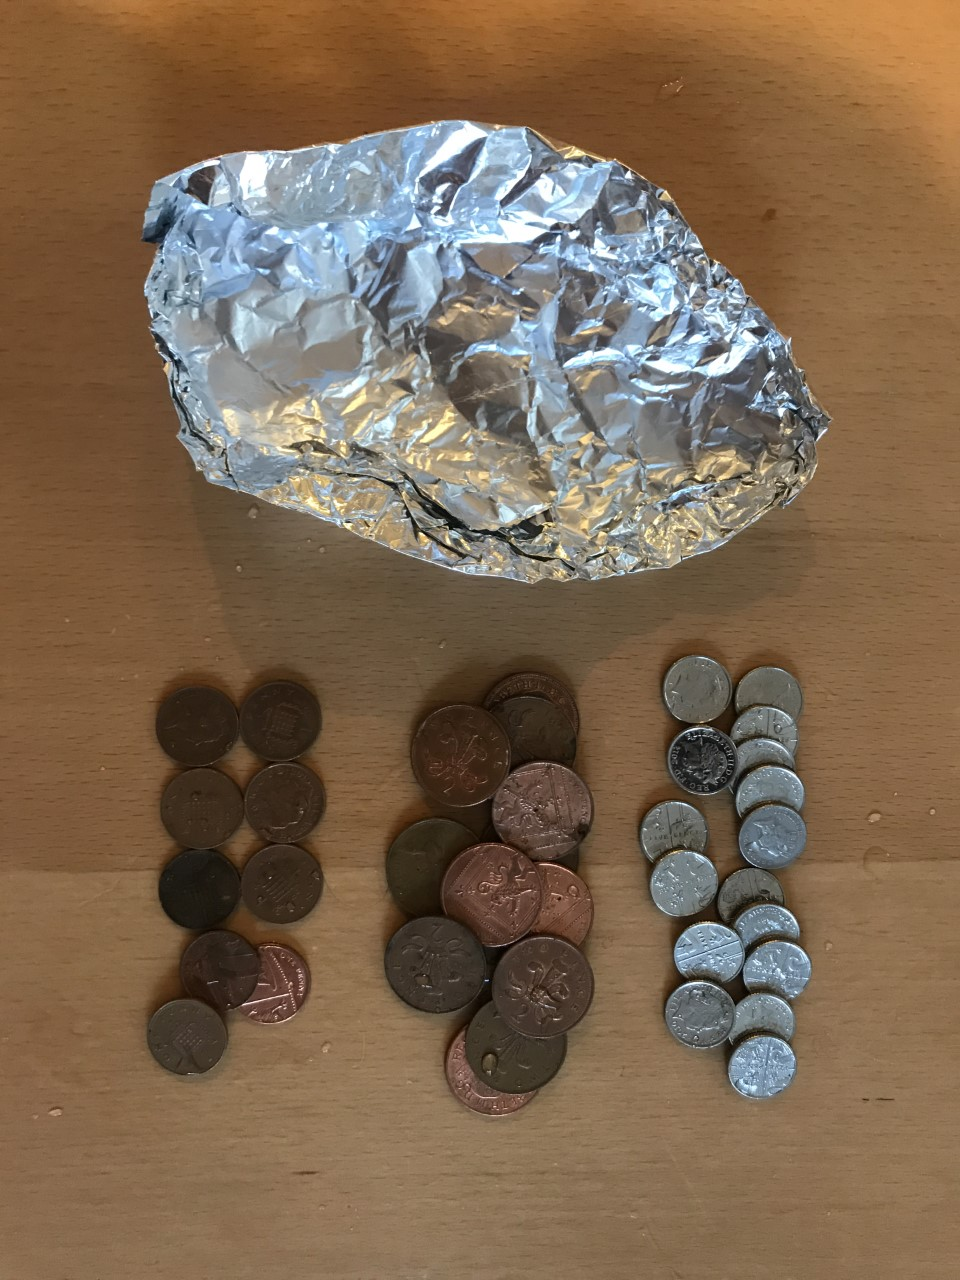 Image of tinfoil boat upside down. Next to it our three piles of coins, separated out into 1p, 2p and 5p pieces.